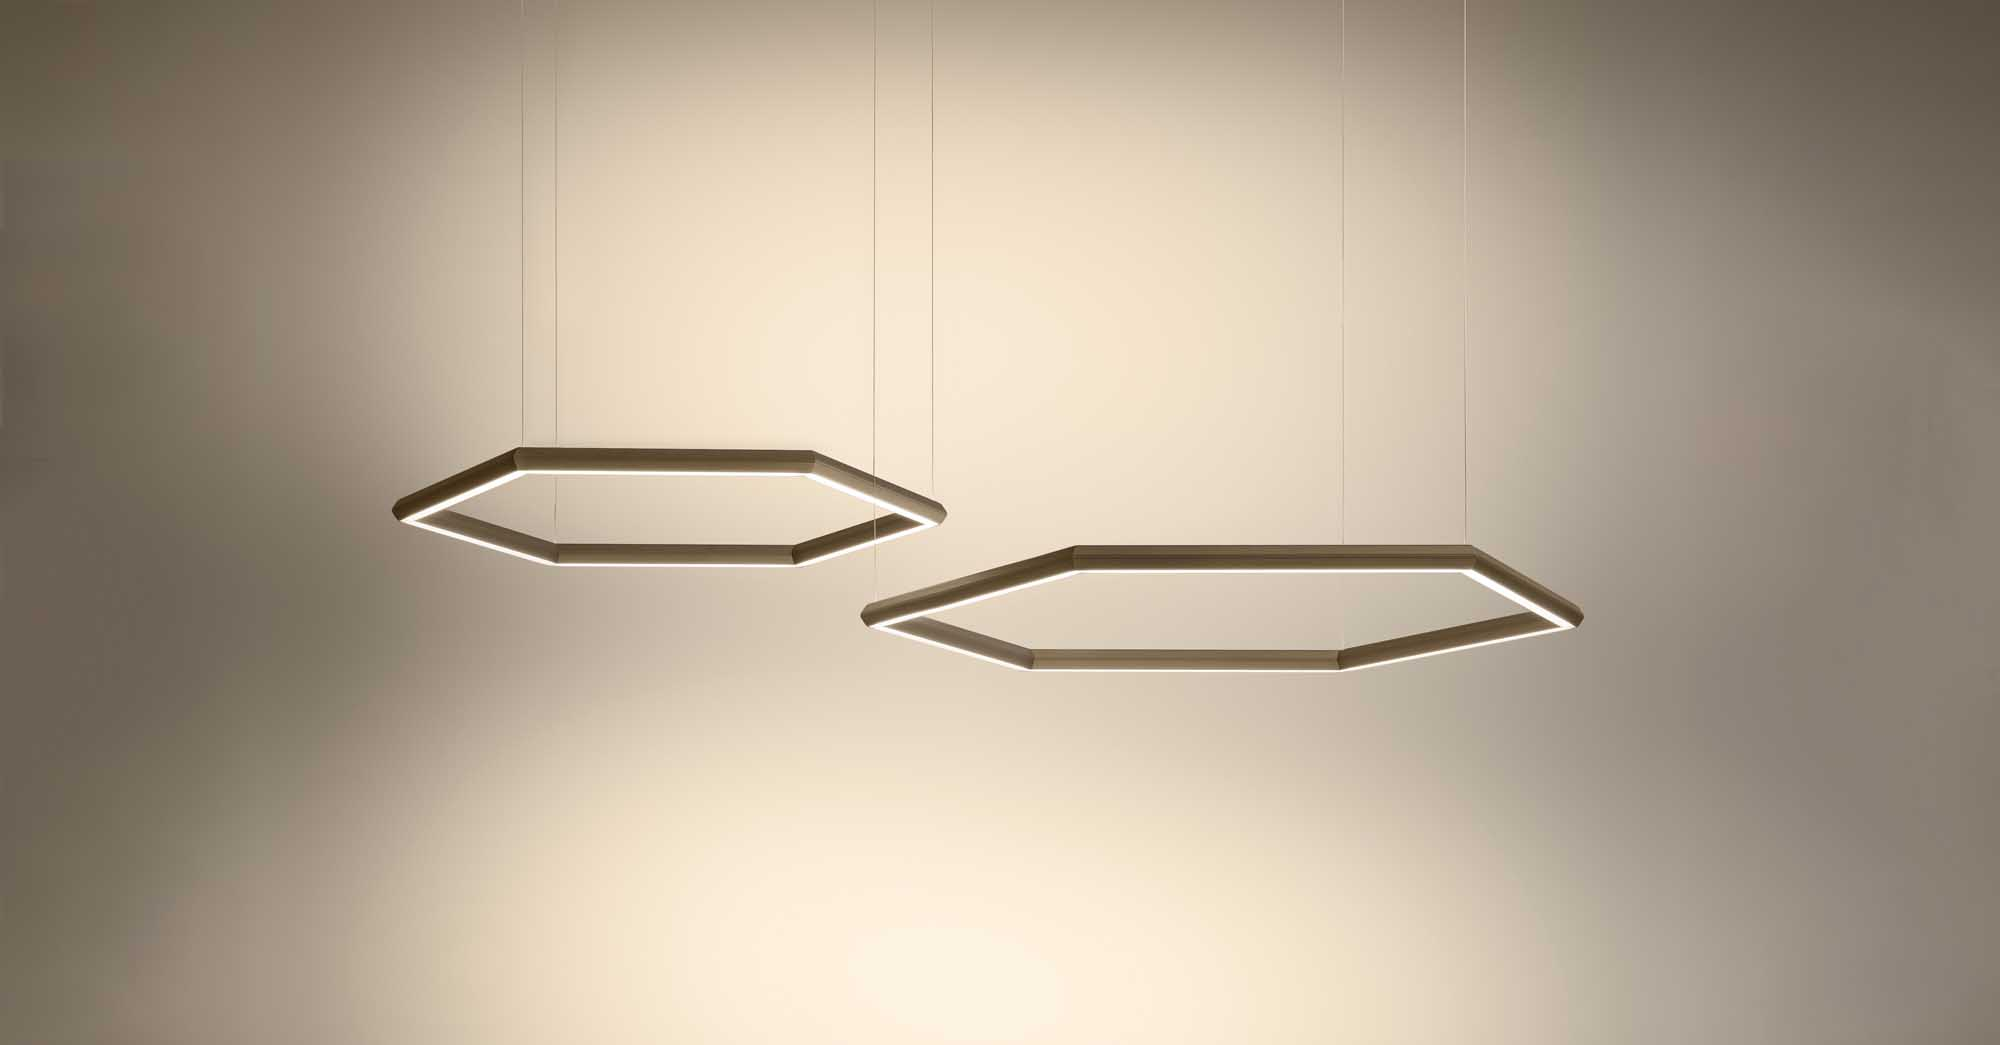 OLEV_LED_LAMP_POLY_ESAGONO_DTW_3000K_orizzontale